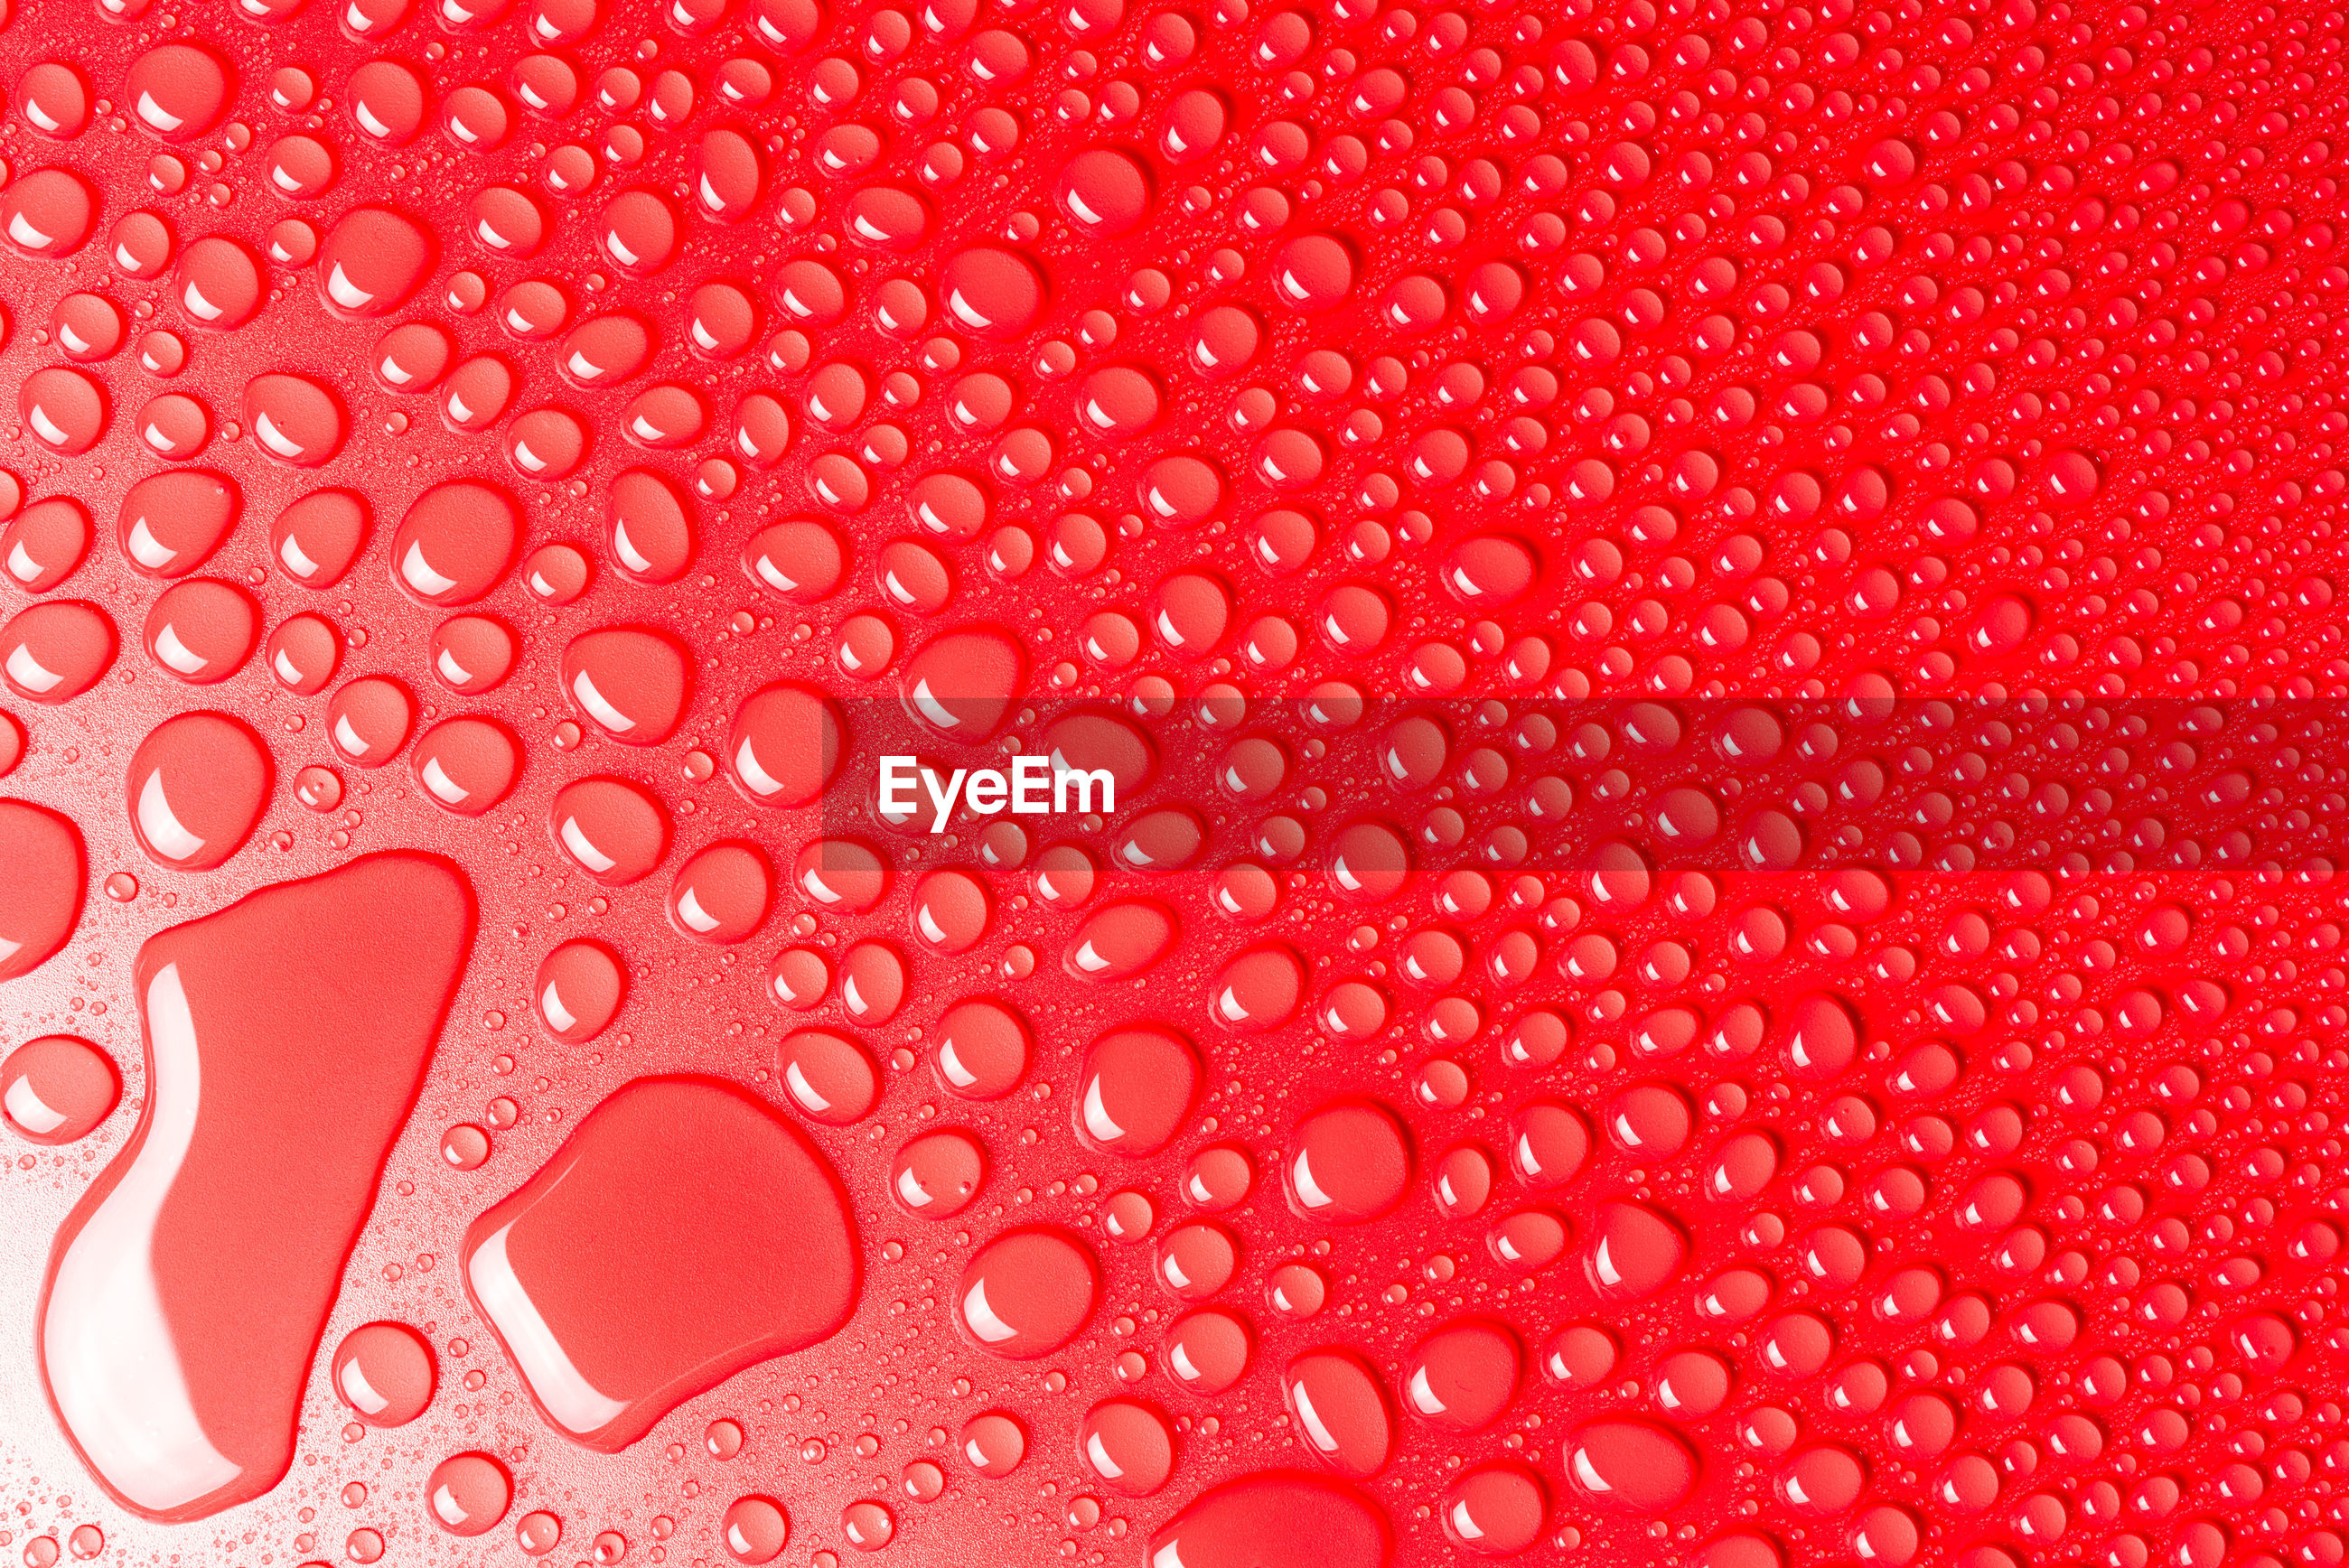 Droplets of water on a red, matte background illuminated with a delicate light.